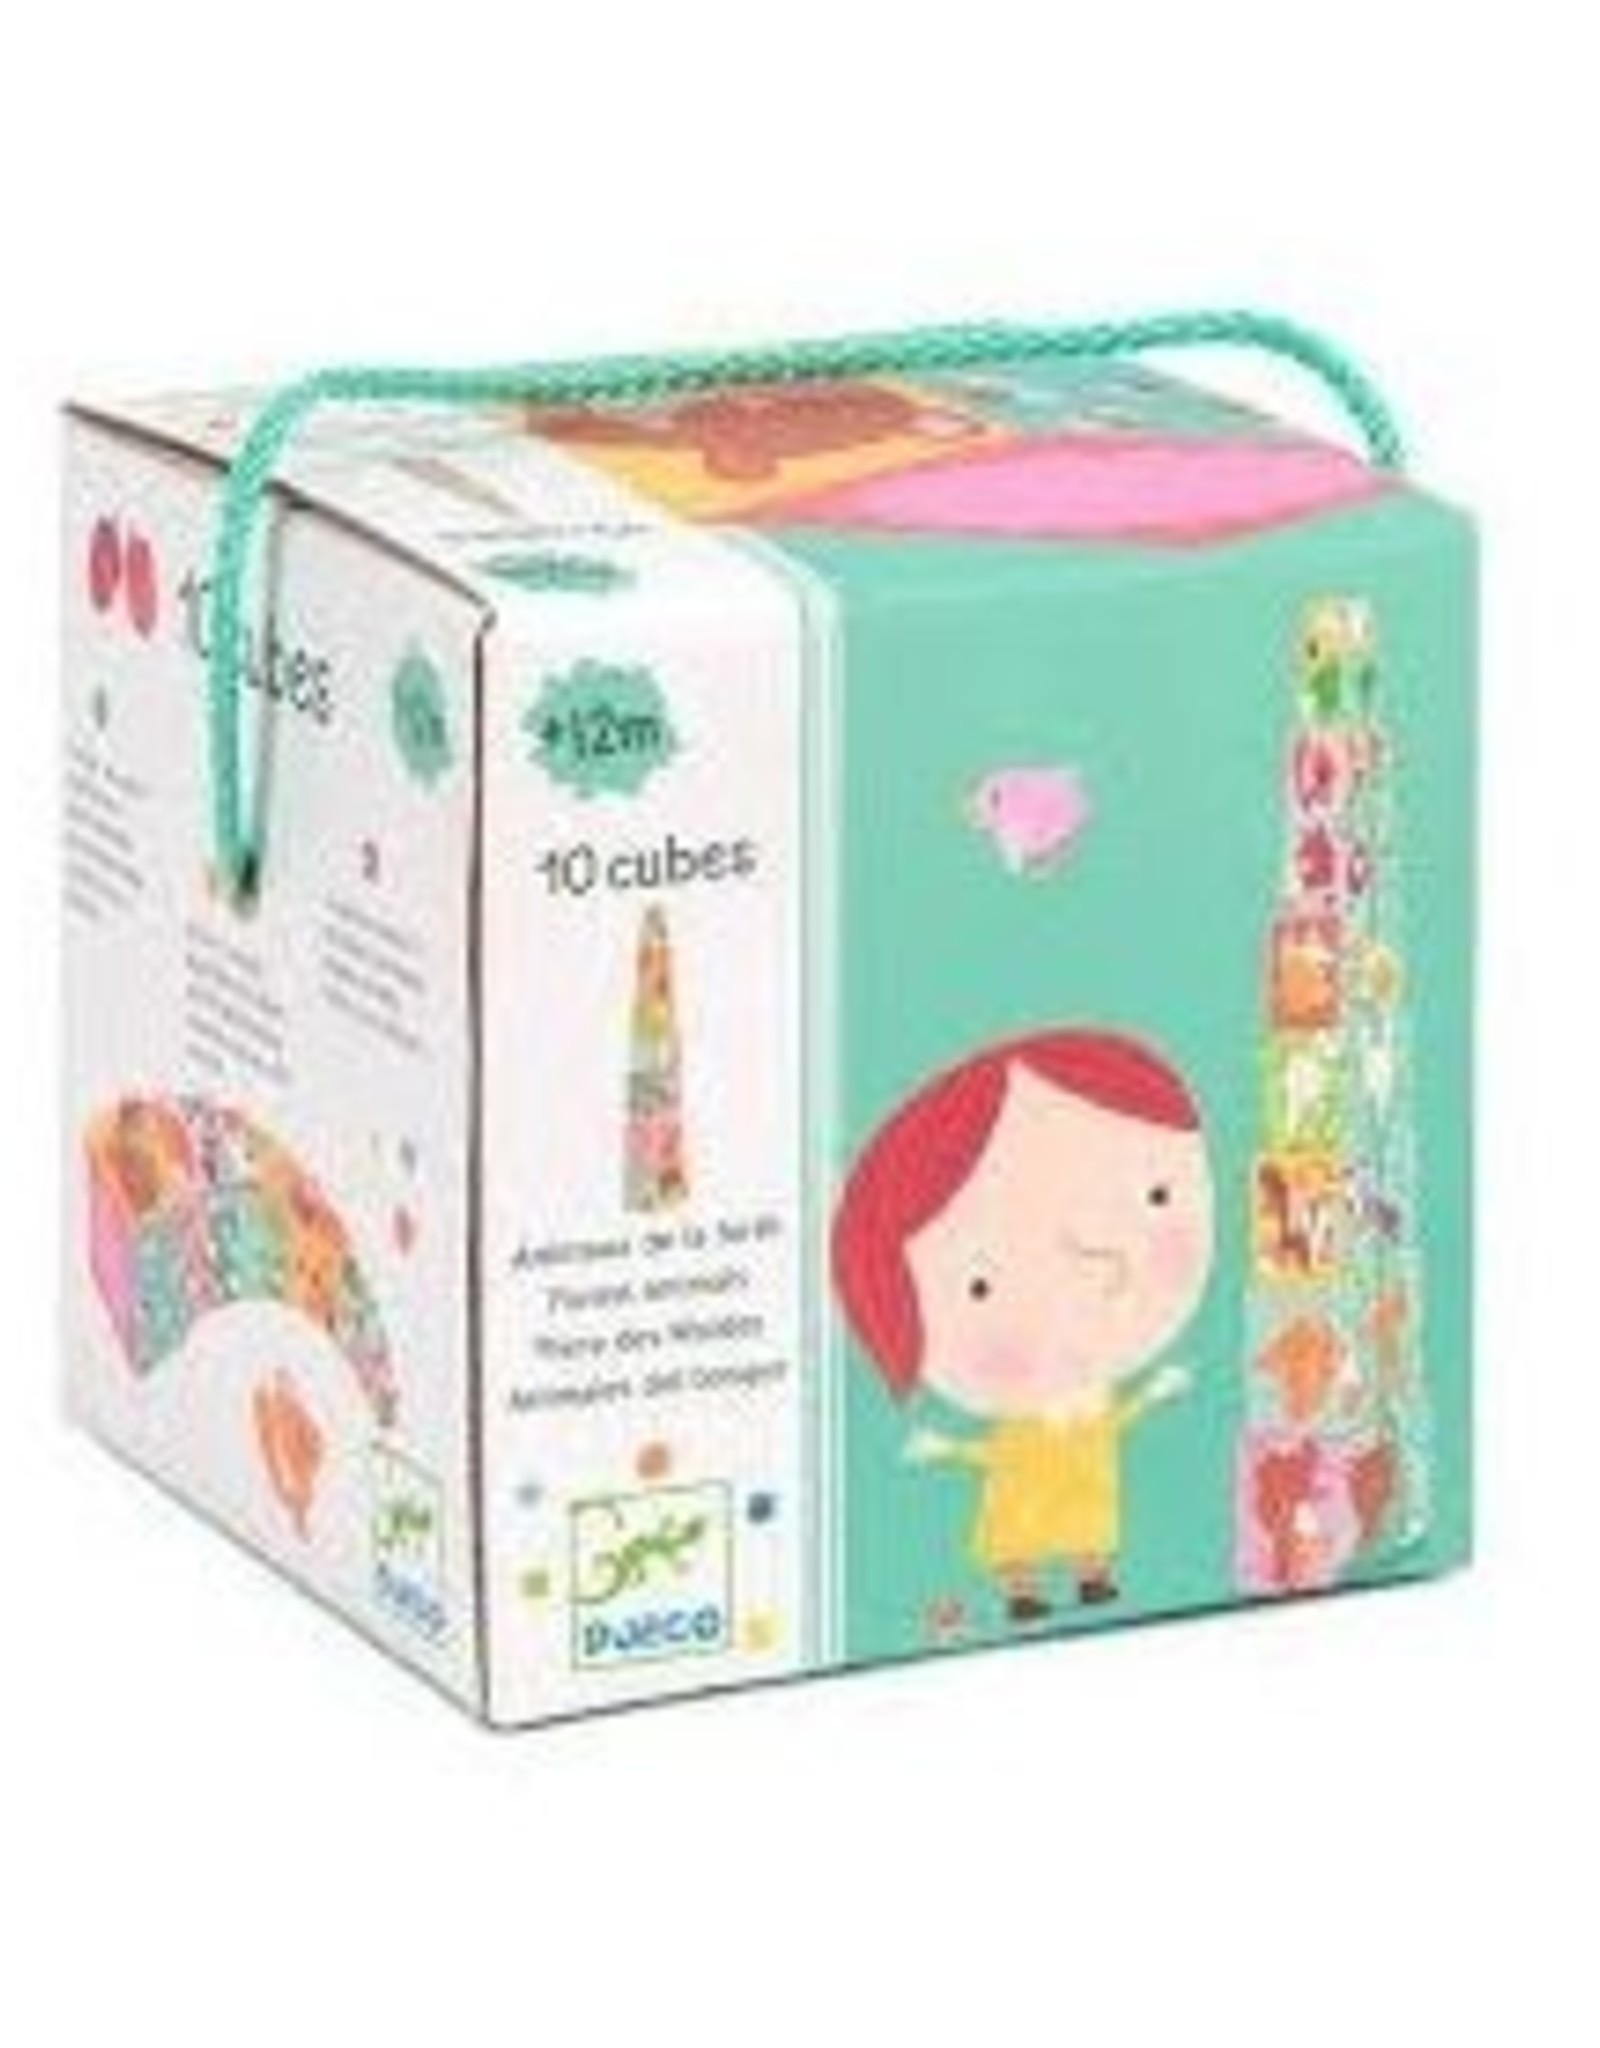 Djeco 10 Cubes (blocks for infants) - Forest